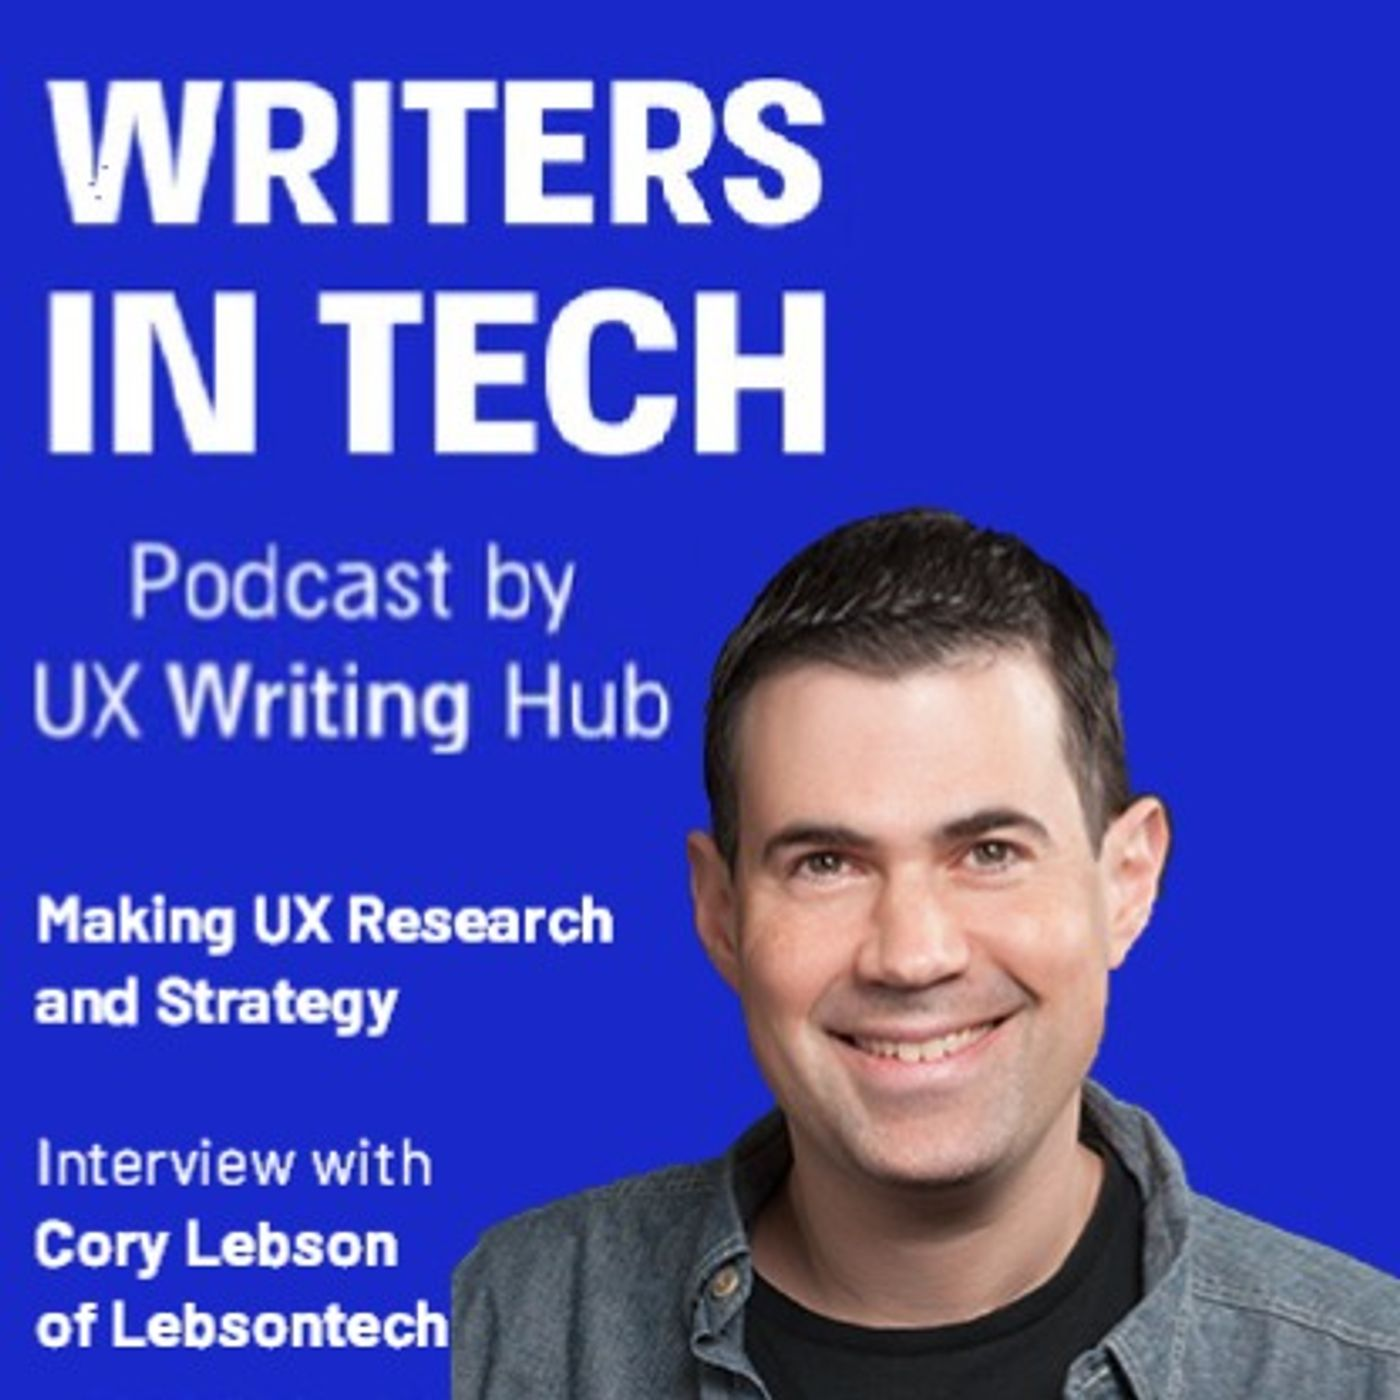 Making UX Research and Strategy | Interview with Cory Lebson of Lebsontech